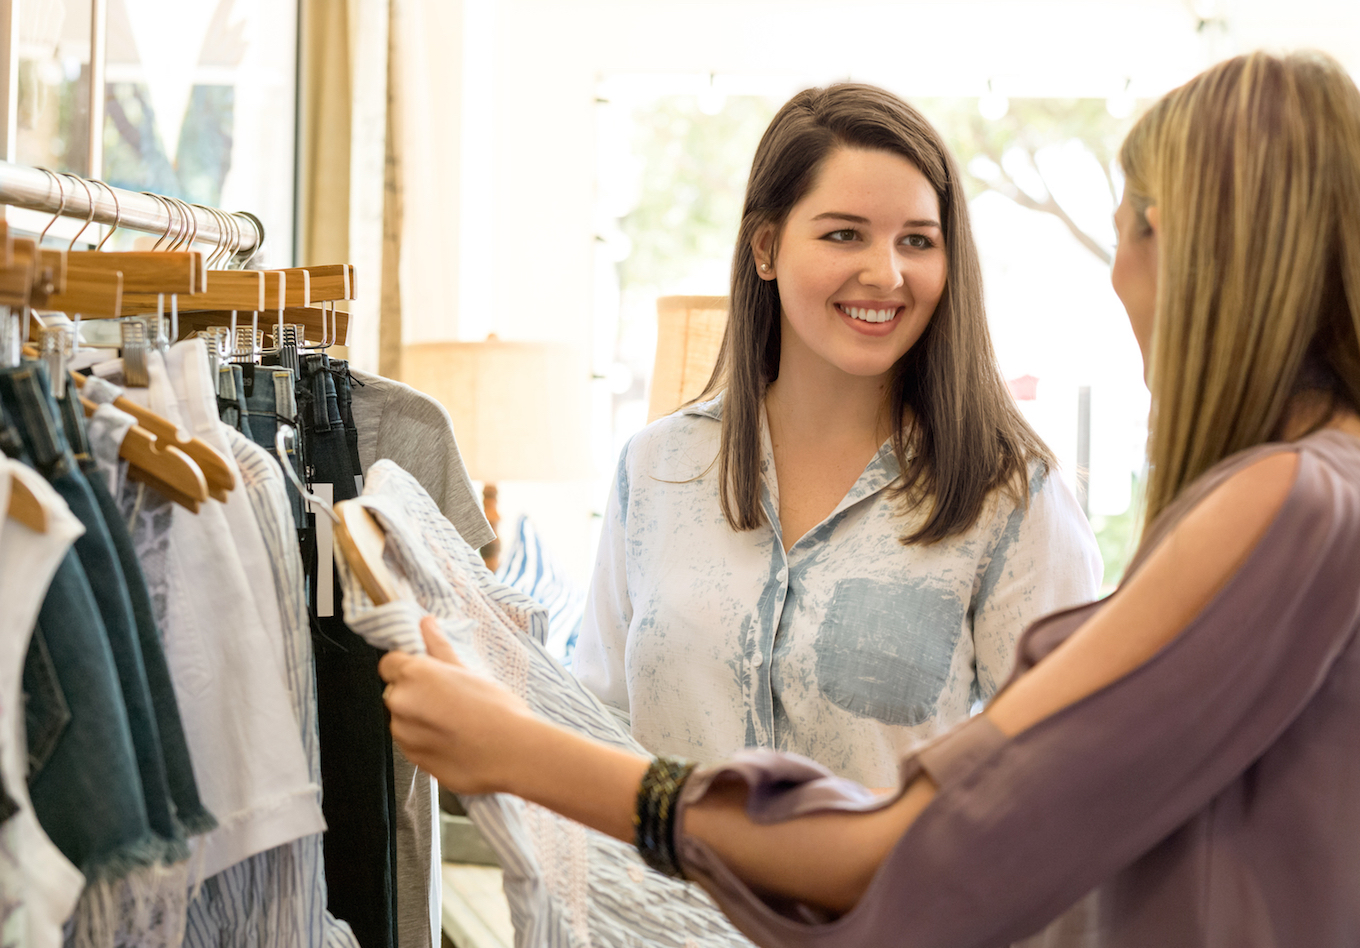 5 Simple Ways to Get More Repeat Customers